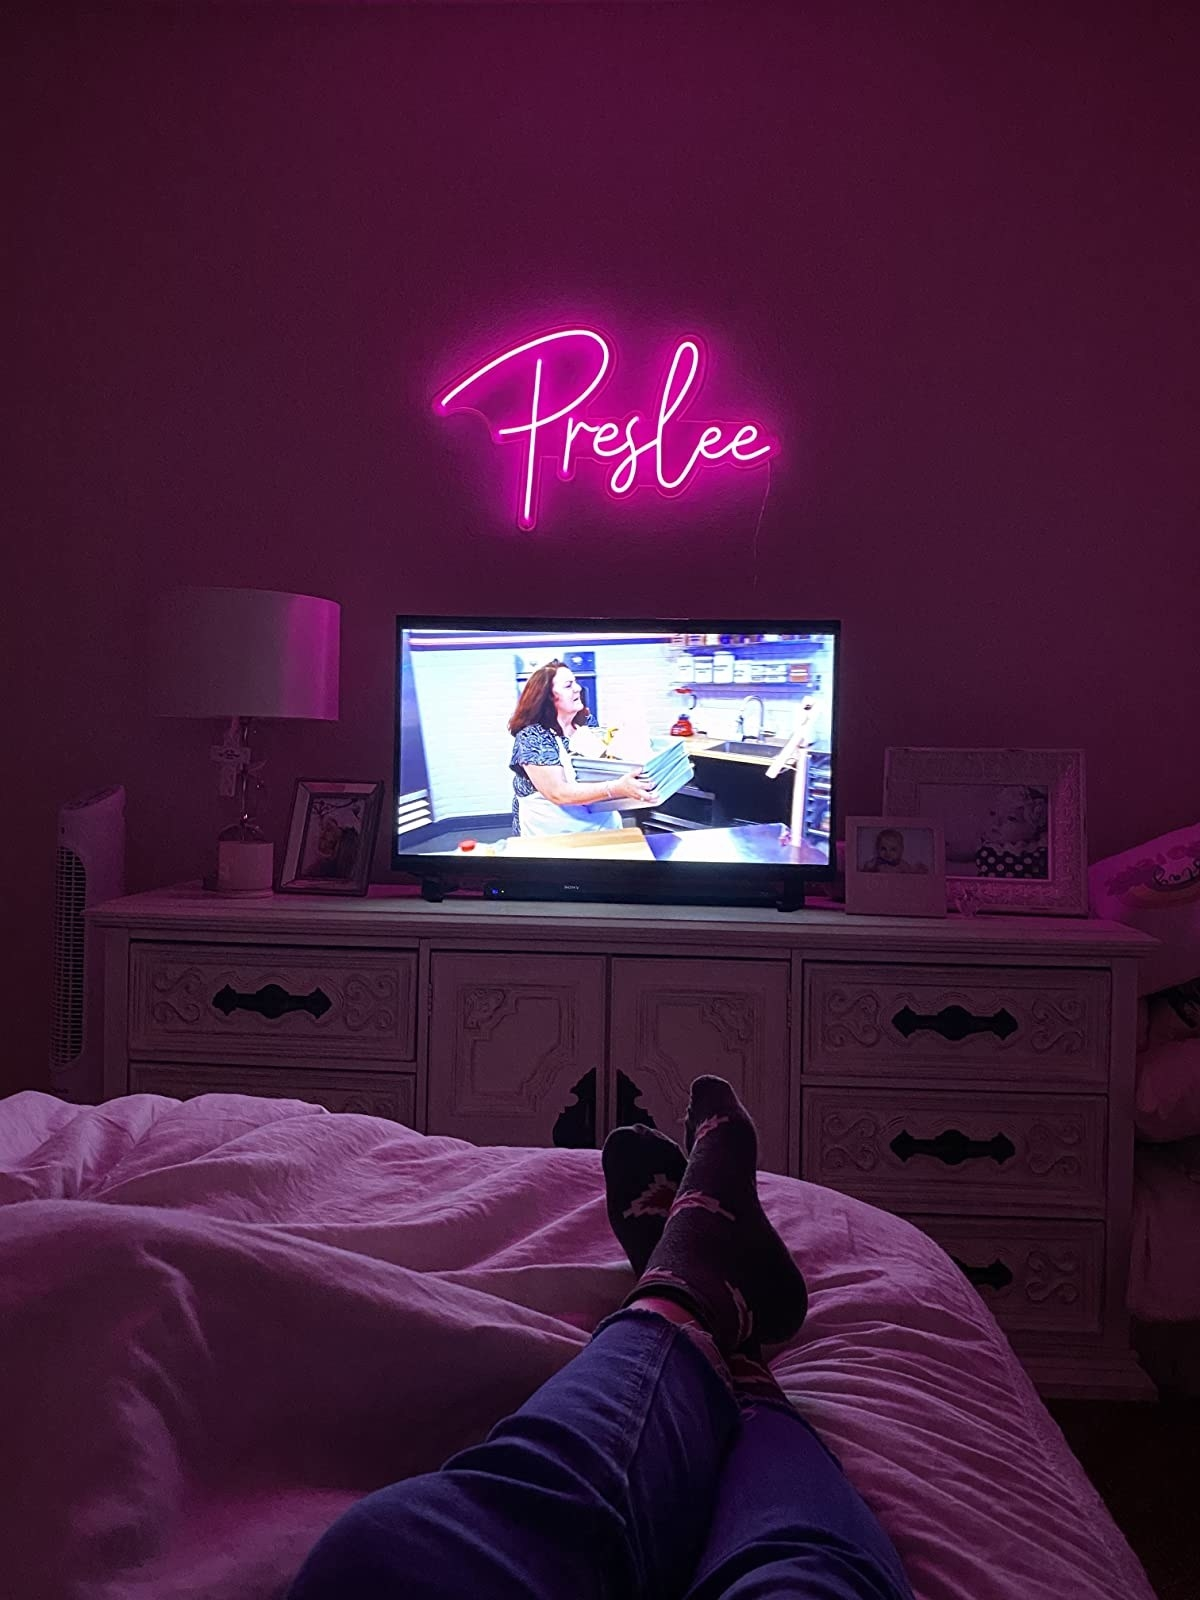 """reviewer image of a pink neon sign that reads """"Preslee"""" hanging on a wall above a TV"""